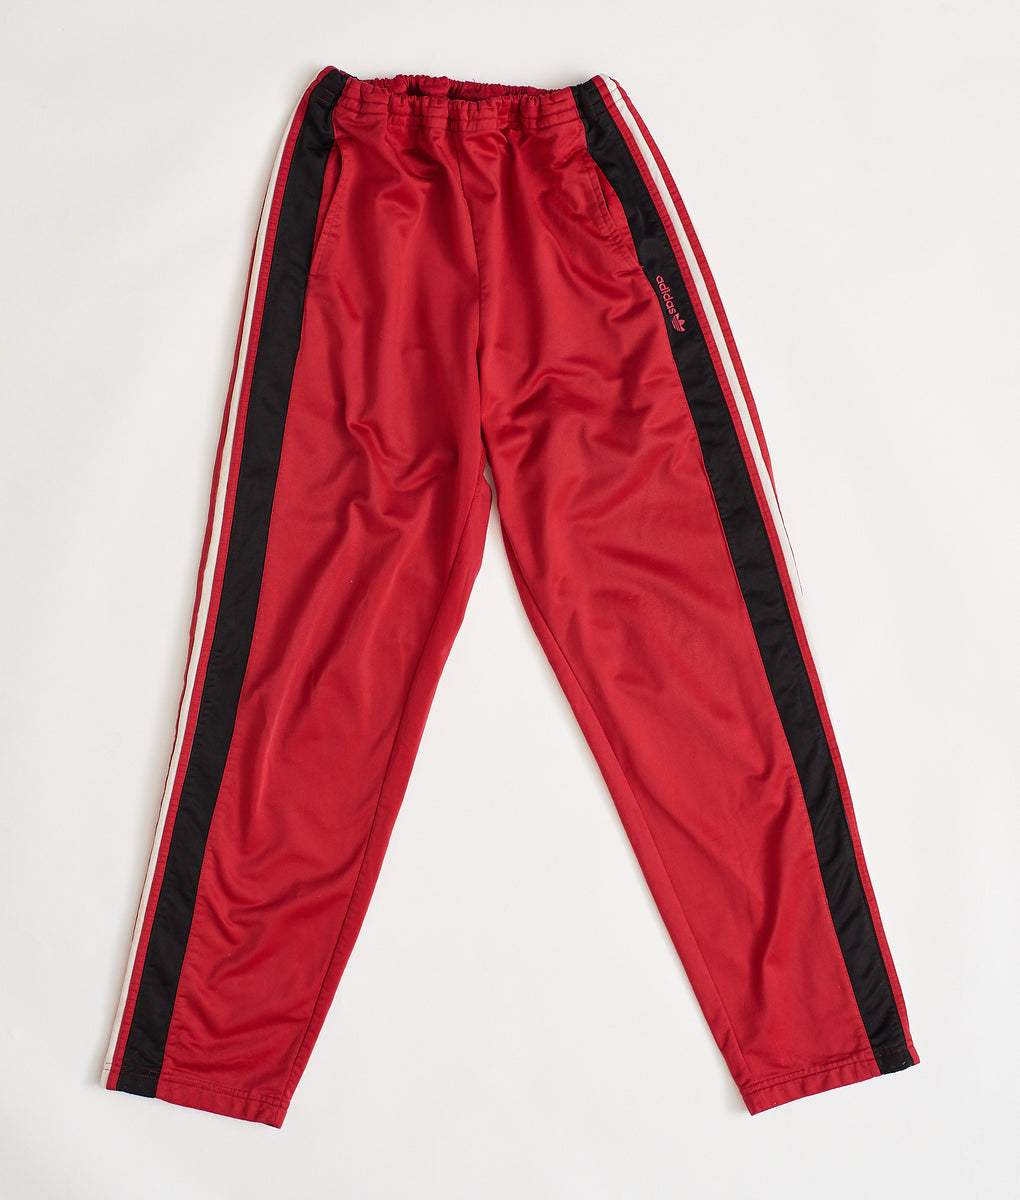 Vintage Adidas Popper Track Pants Red/Blk (S) - FROTHLYF